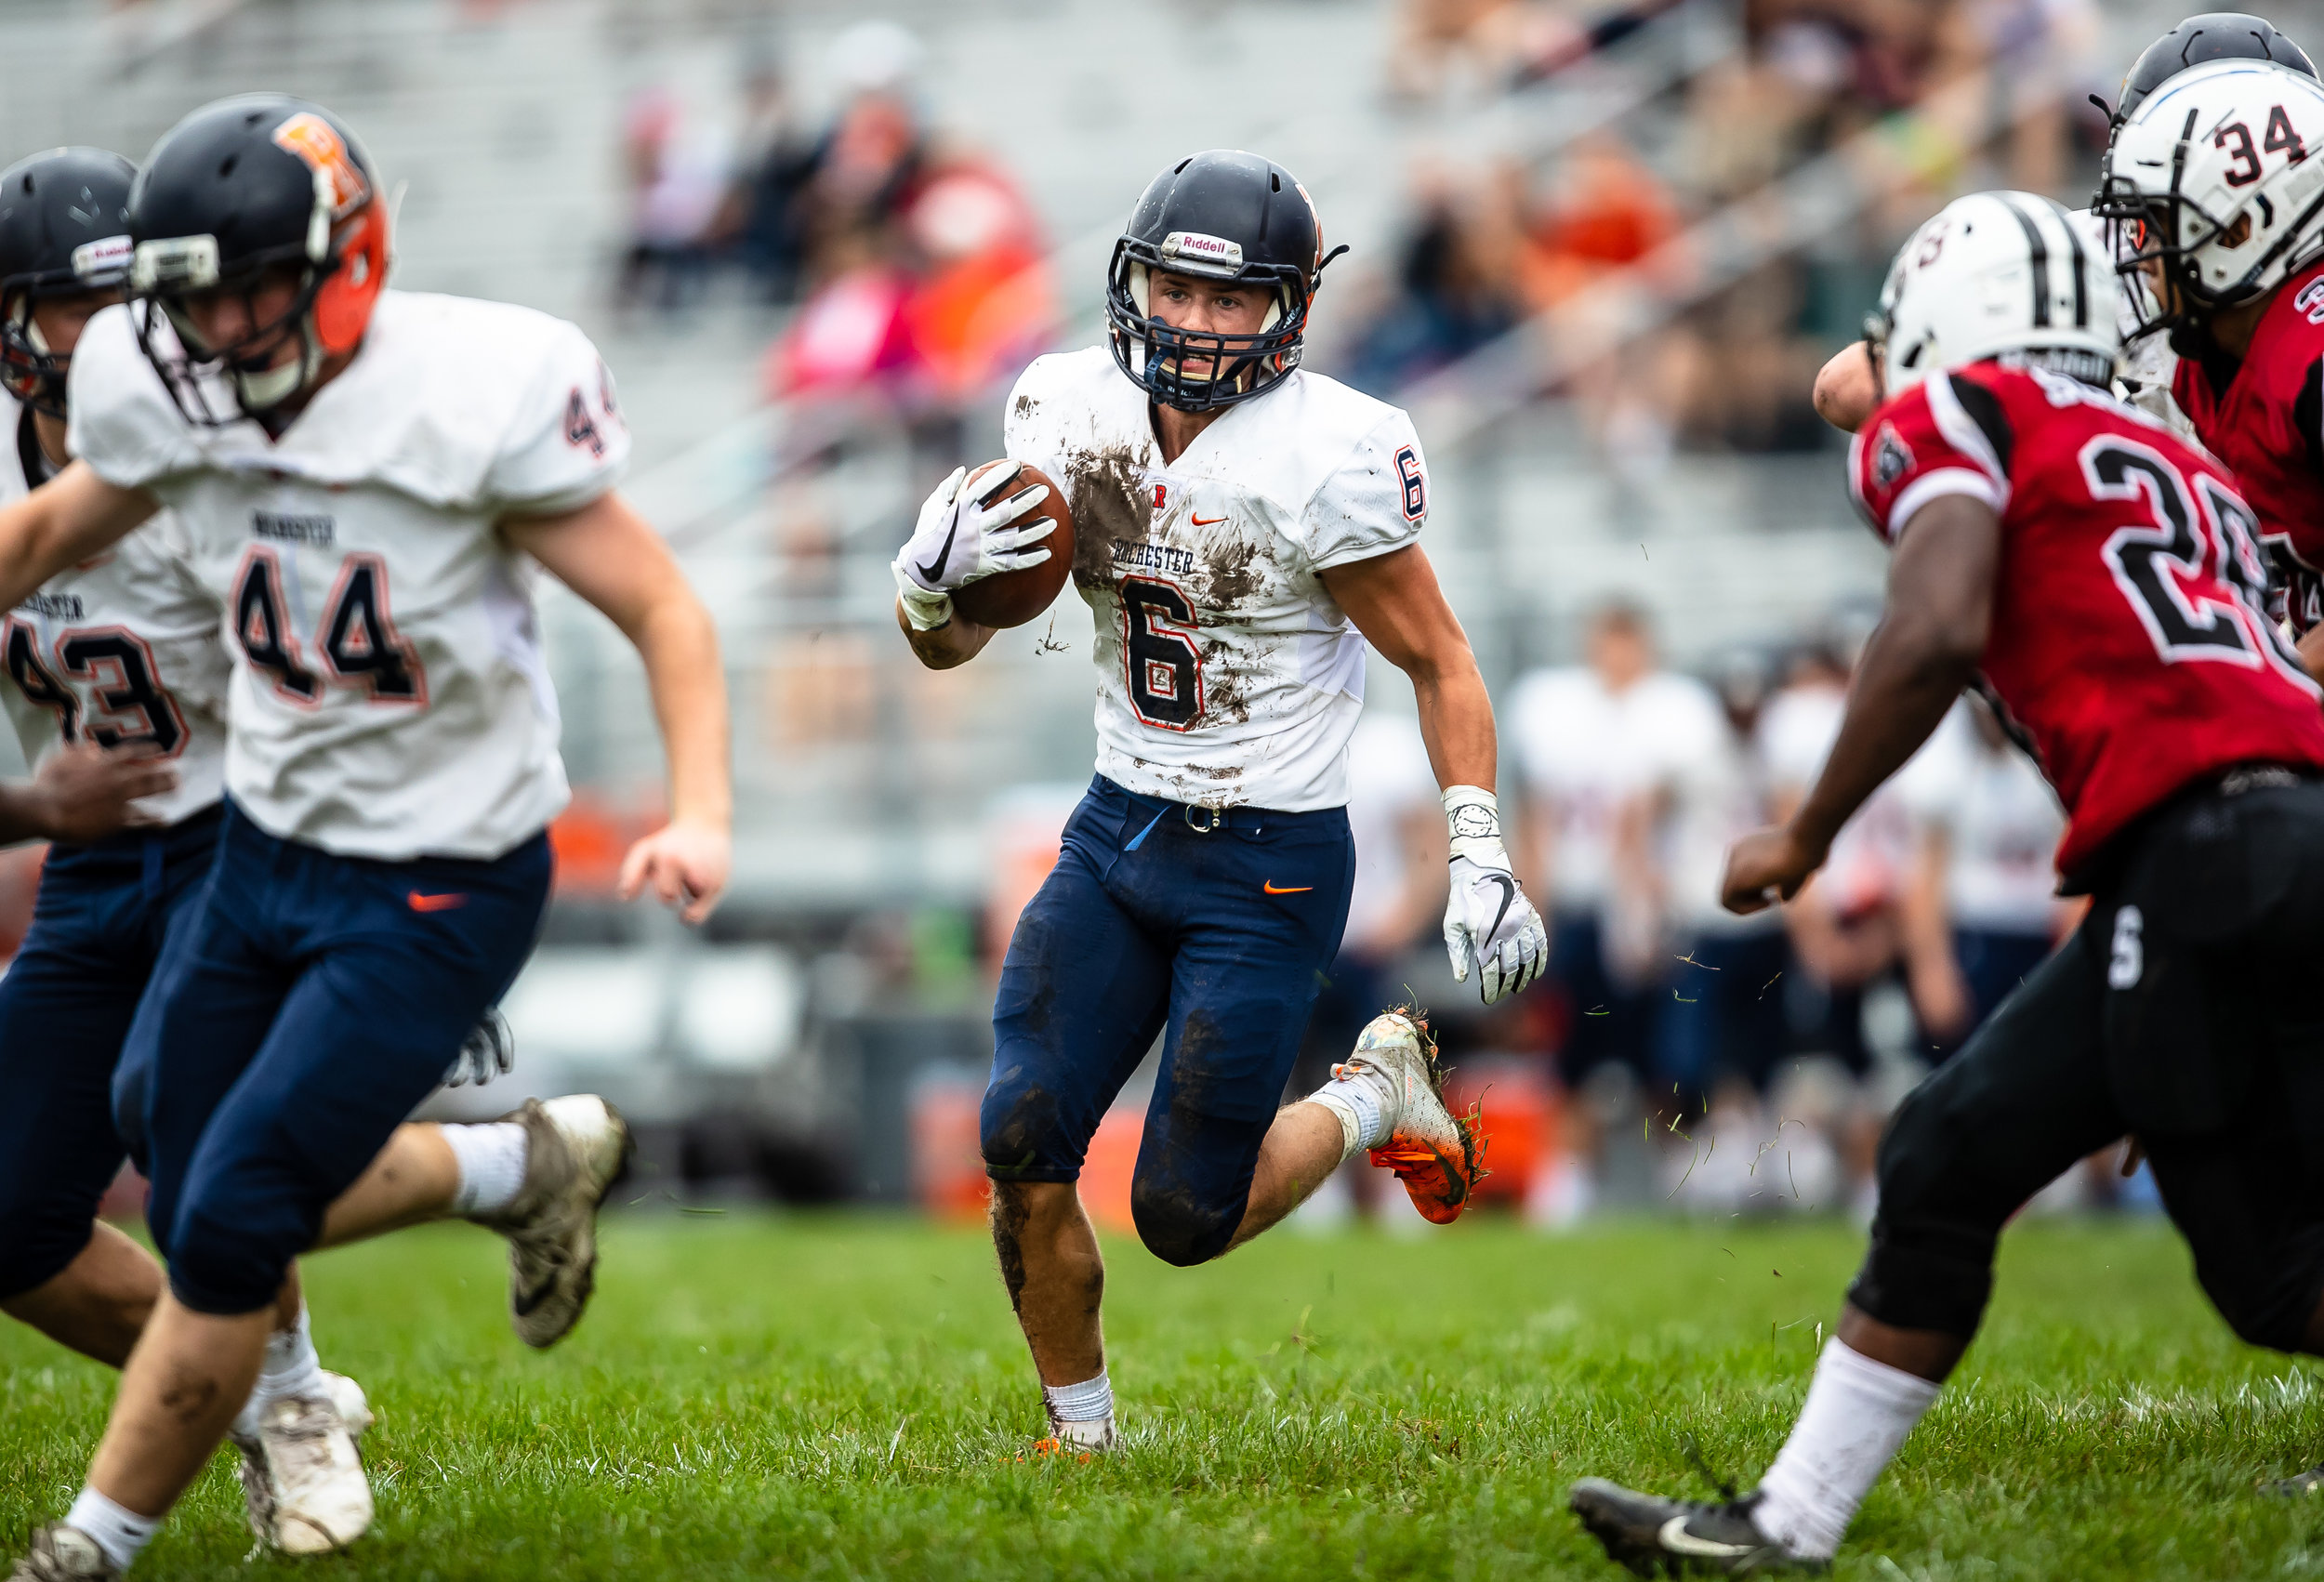 Rochester's Cade Eddington (6) looks for an opening as he follows his blockers on a run against Springfield at Memorial Stadium, Saturday, Oct. 6, 2018, in Springfield, Ill. [Justin L. Fowler/The State Journal-Register]